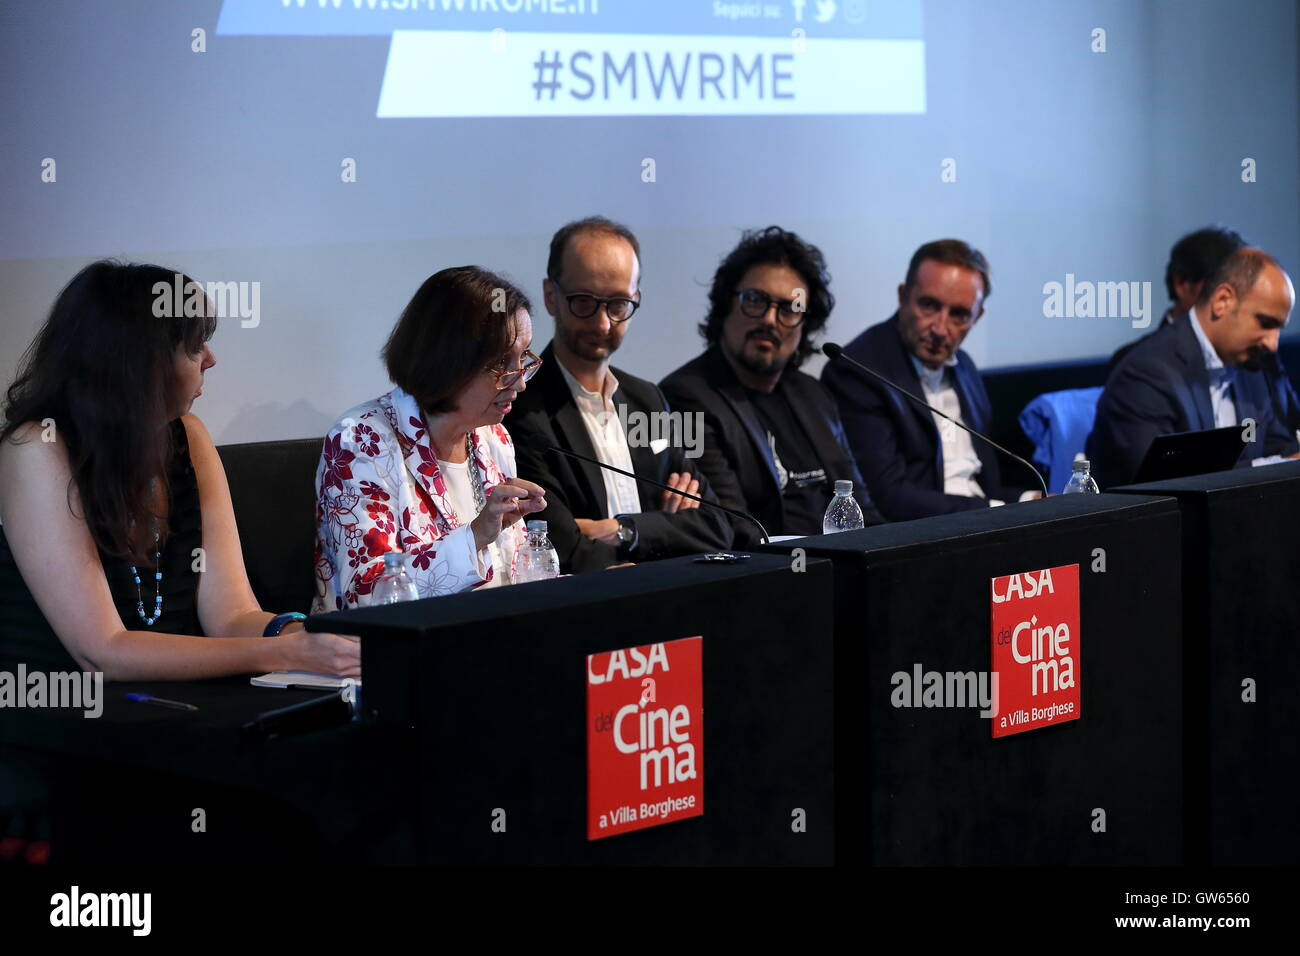 Roma, Italy. 12th Sep, 2016. Press conference of Social Media Week Rome, which is among the 10 most innovative and - Stock Image